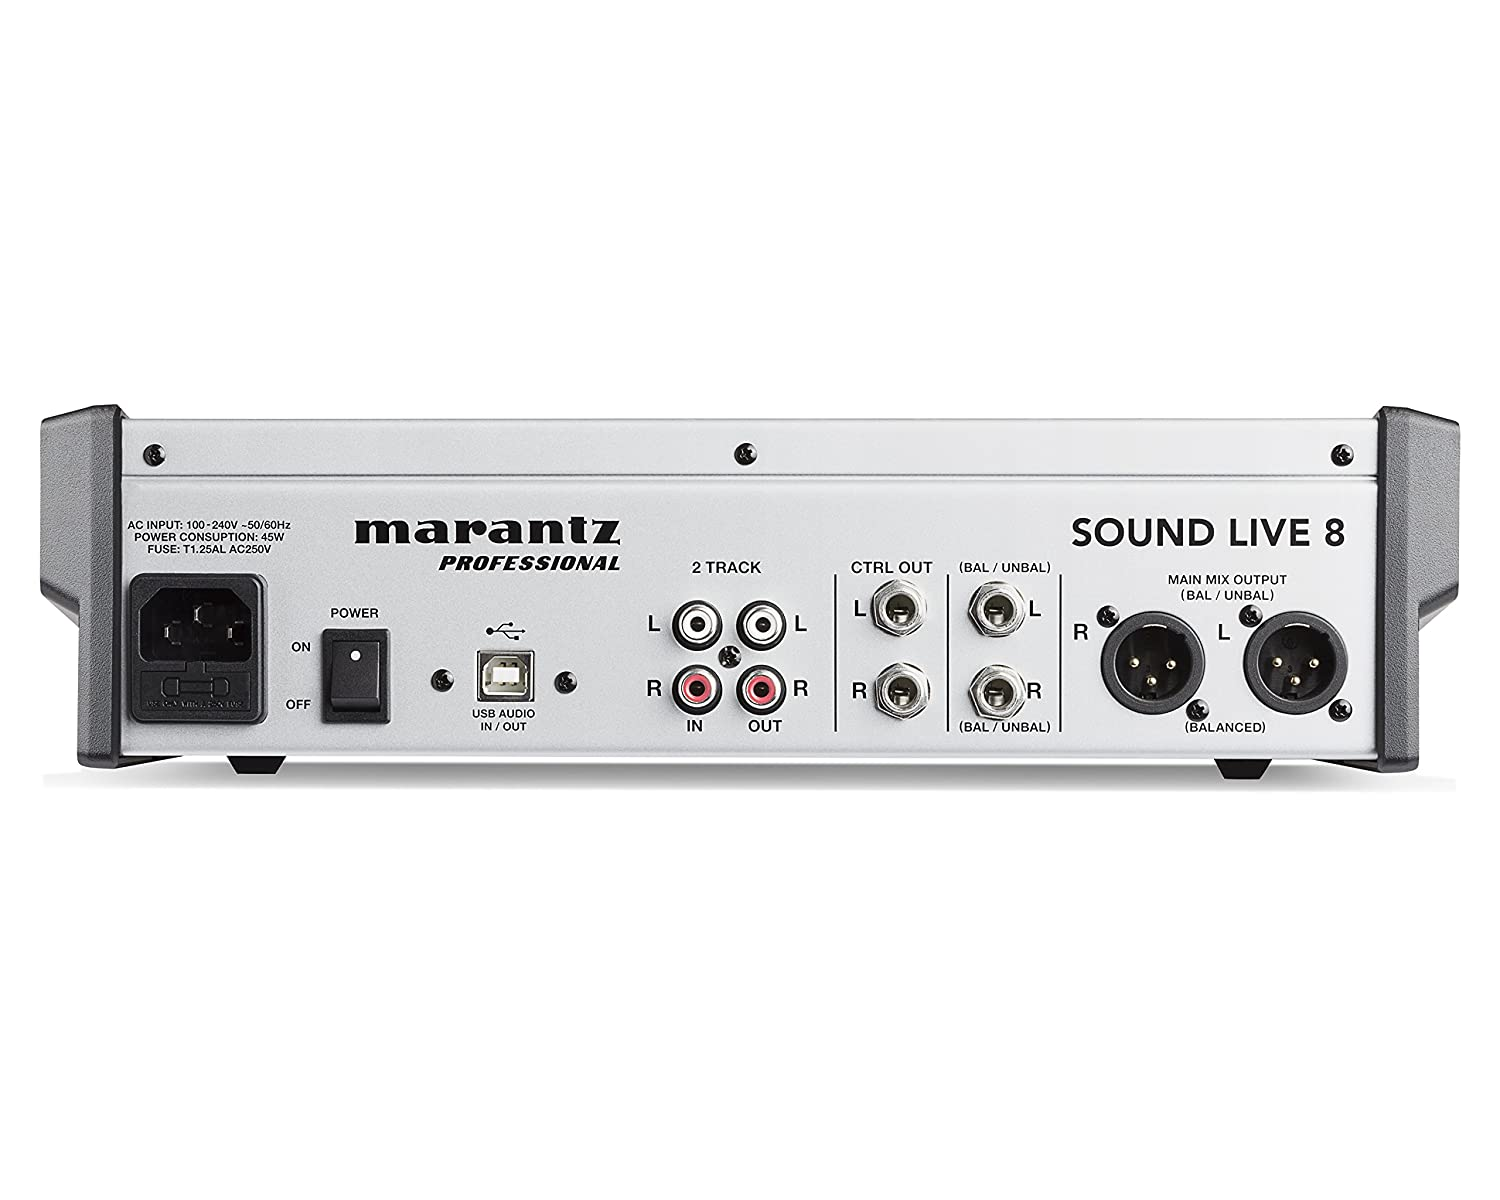 Marantz Professional Sound Live 8 Channel 2 Bus Standard Xlr Wiring Diagram Yamaha Tabletop Mixer With 5 Inputs Mic Preamps Musical Instruments